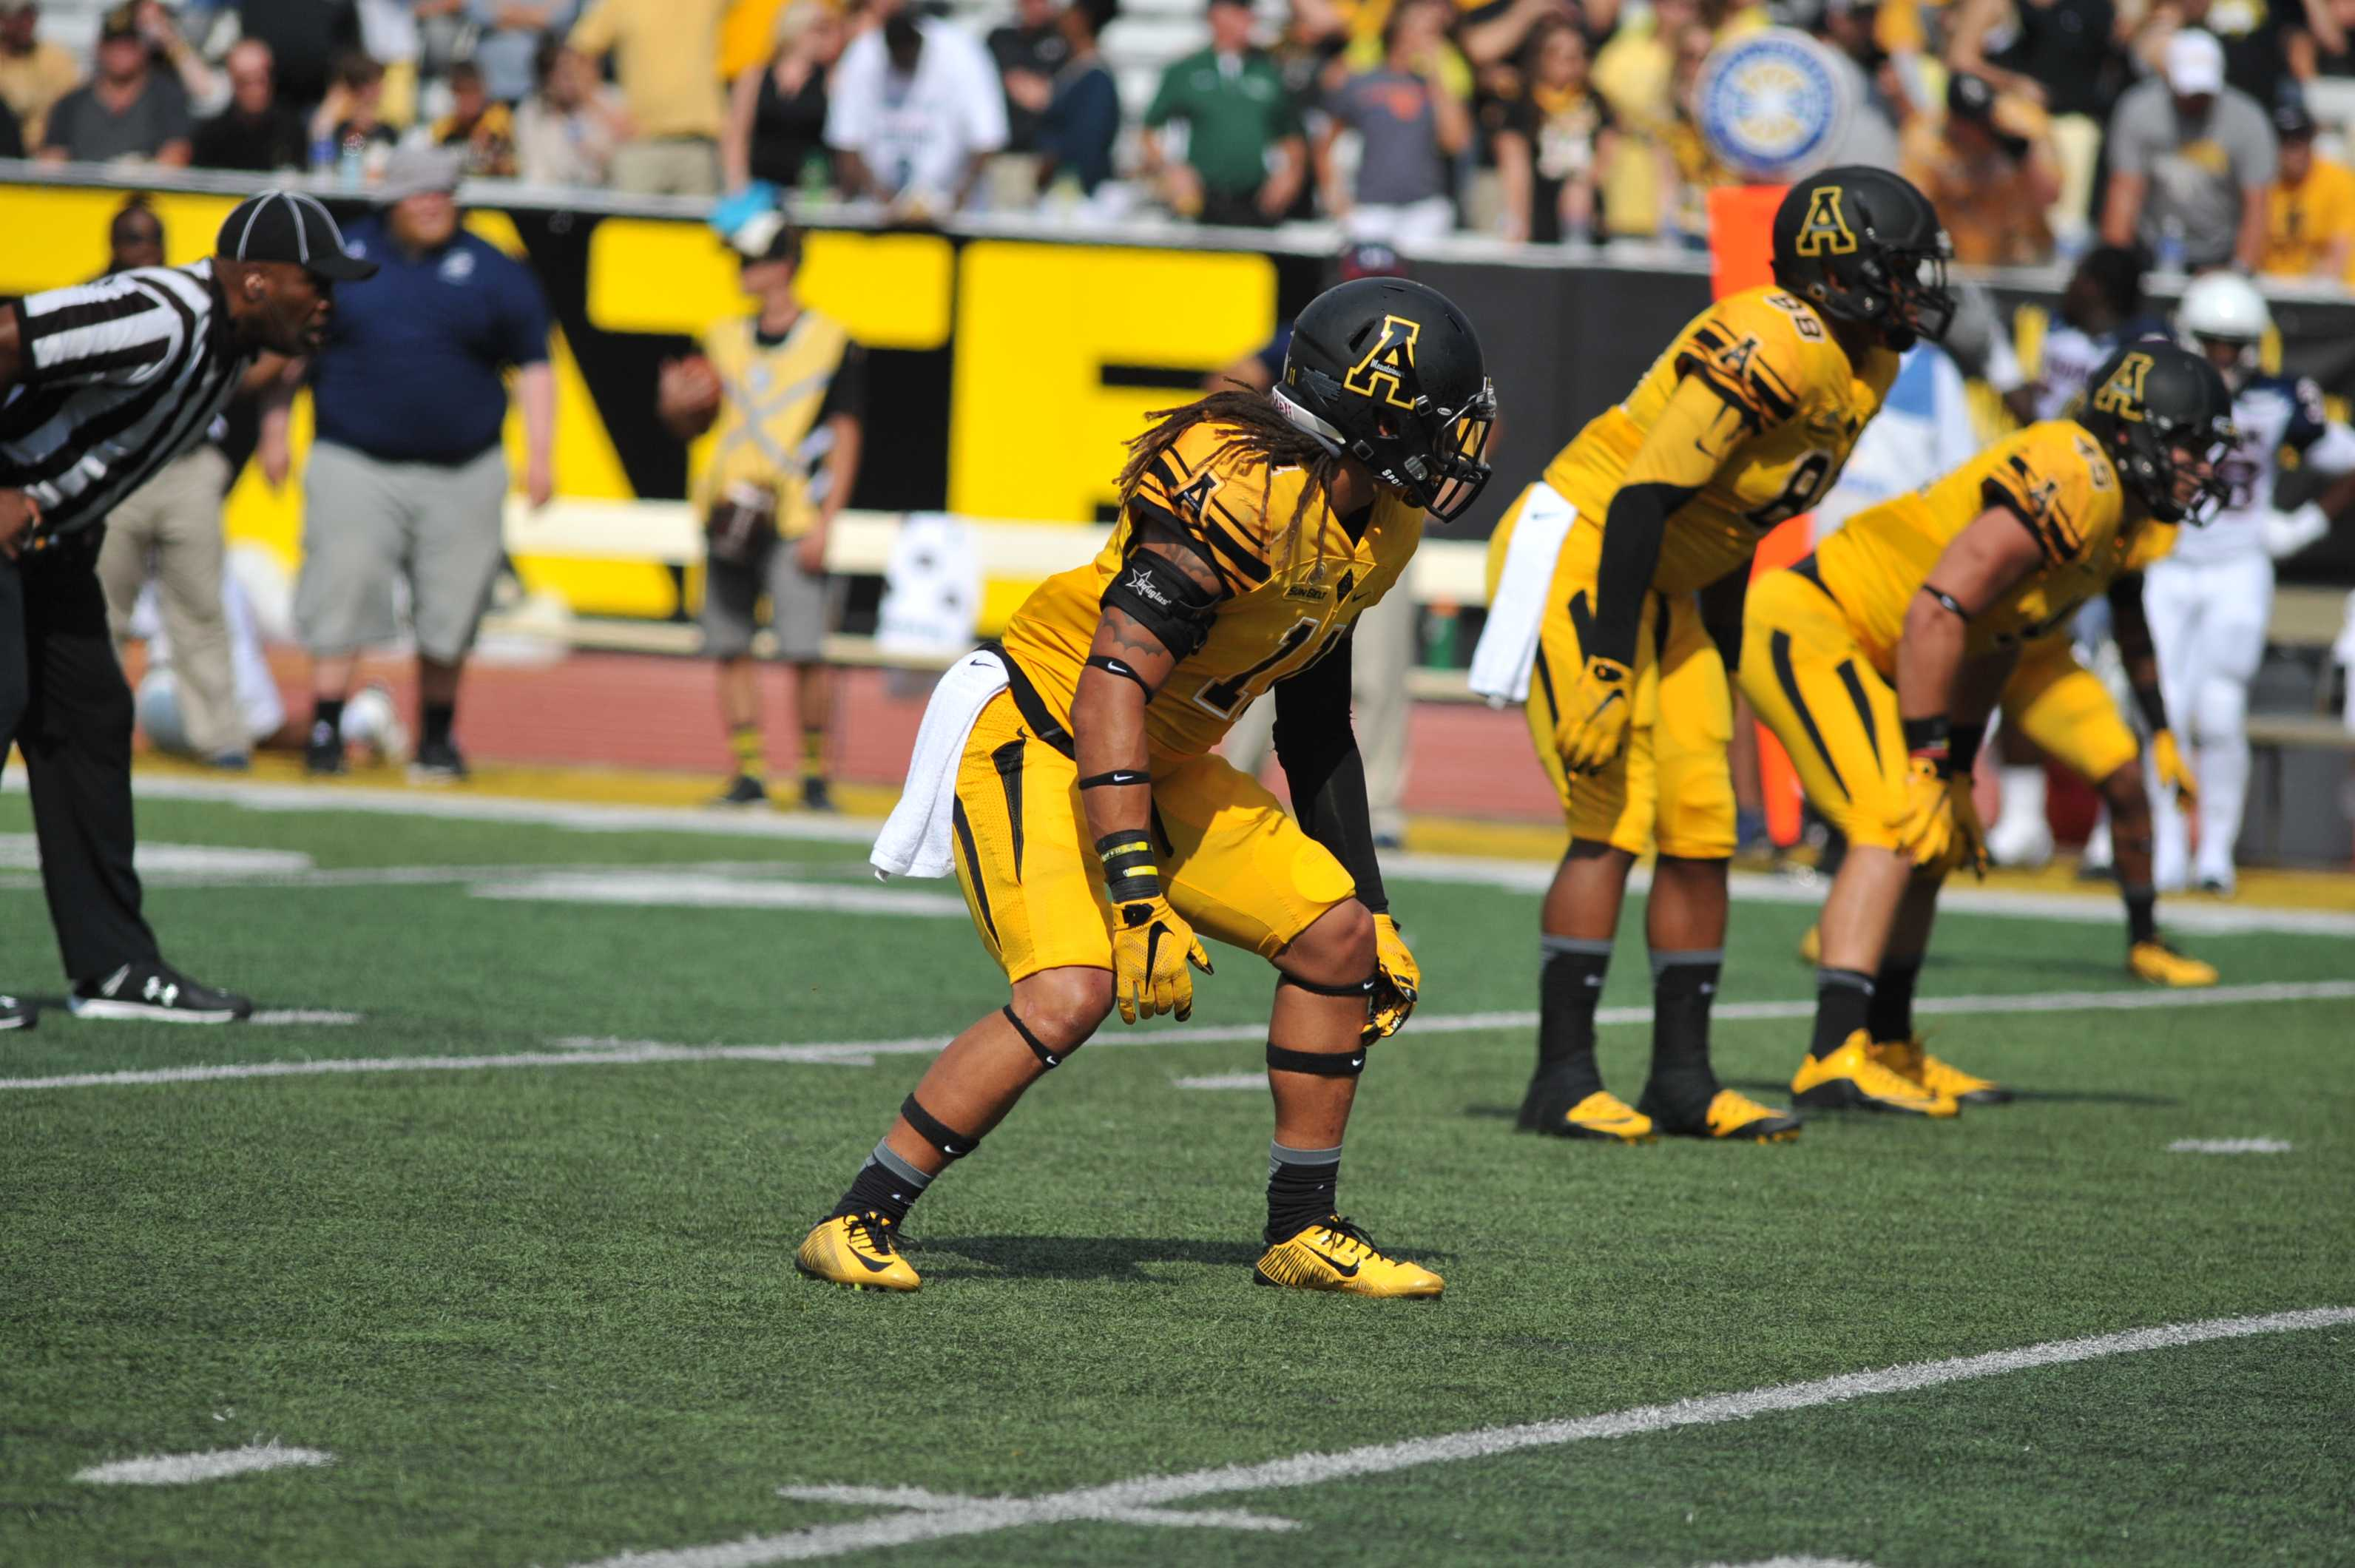 Sophomore linebacker Devan Stringer awaits the snap to rush the passer in App State's home opener against Howard. The Mountaineers won 49-0.   Credit: Appalachian State athletics/Dave Mayo